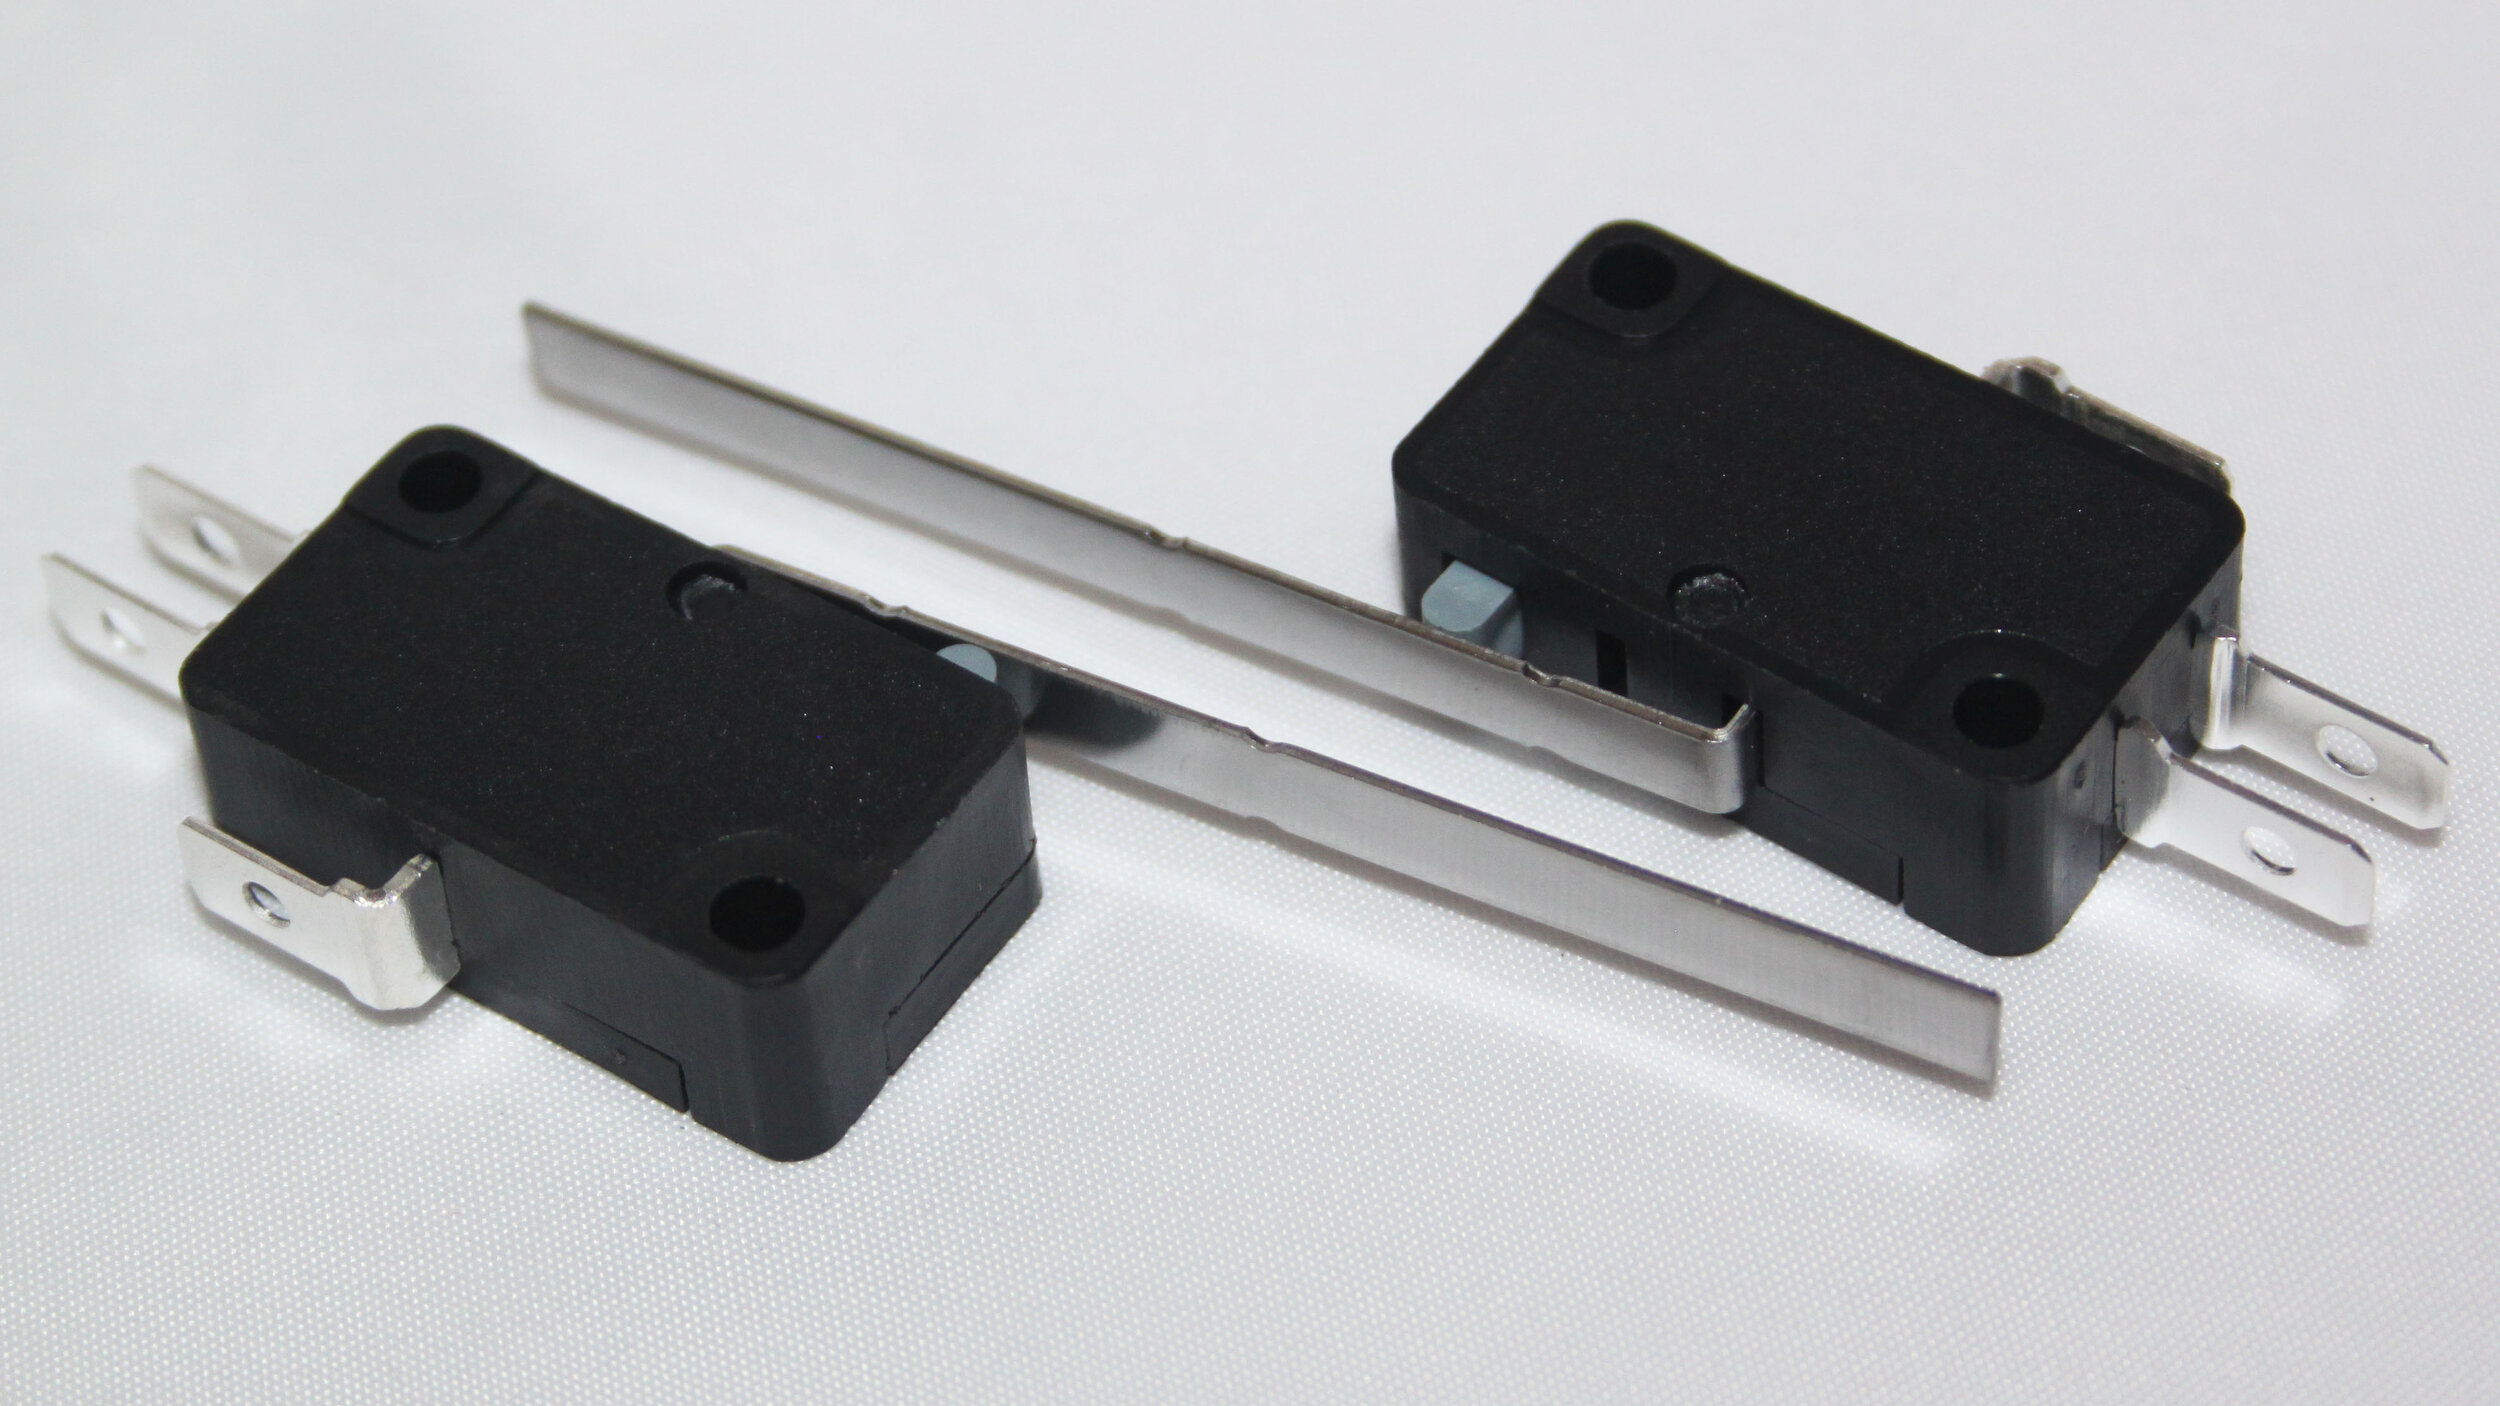 MICRO SWITCH – LONG LEVER - Code: MICSLL51mm Lever SPDT Momentary Micro switchRating: 3A 250V AC. Operating force: 40gfBody dimensions: 28 x 16 x 10mmPrice: $2.22